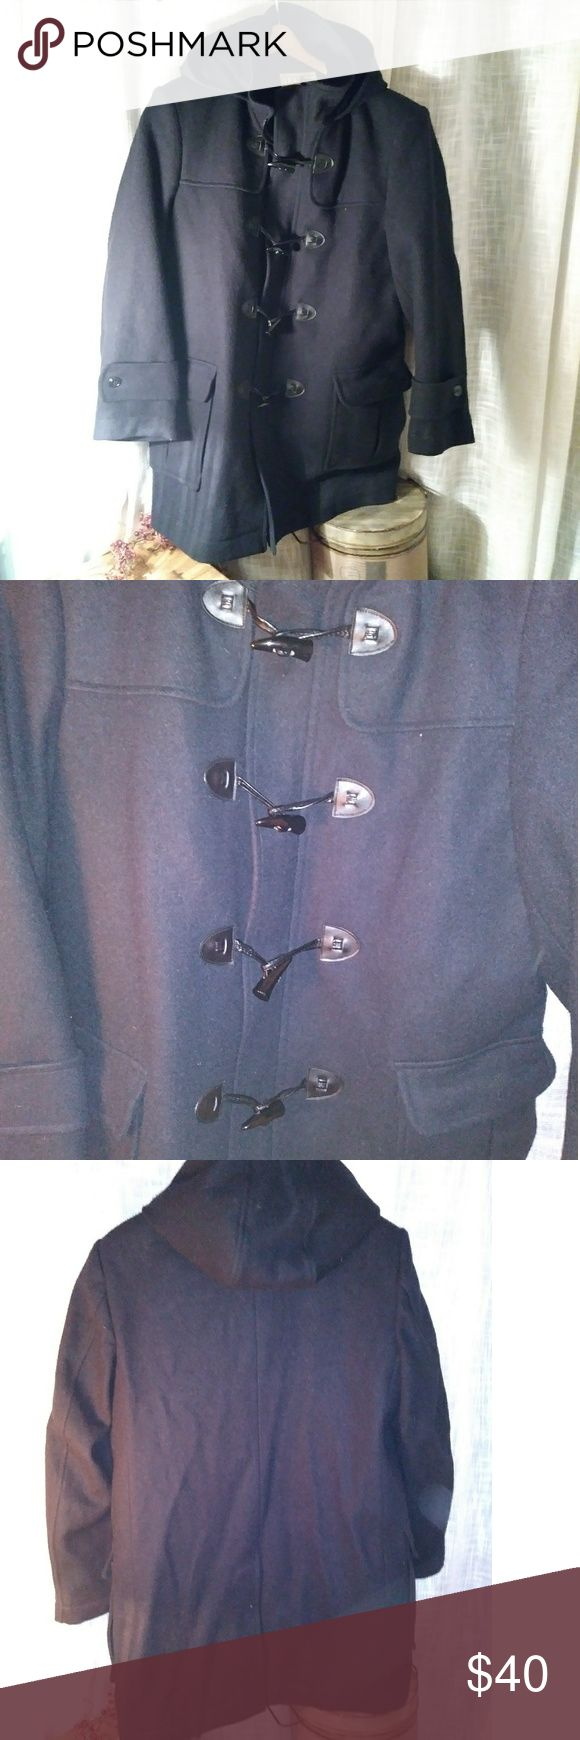 EUC L.L.Bean Pea Coat w/ Hood (M-Reg) This is a like new medium- reg L.L.Bean Black pea coat. This is a black like the last pic, all buttons and zippers firmly in place. This is made of mostly wool so dry clean only for best results. This would keep you very warm and stylish at the same time. Thank you for stopping by and looking! L.L. Bean Jackets & Coats Pea Coats